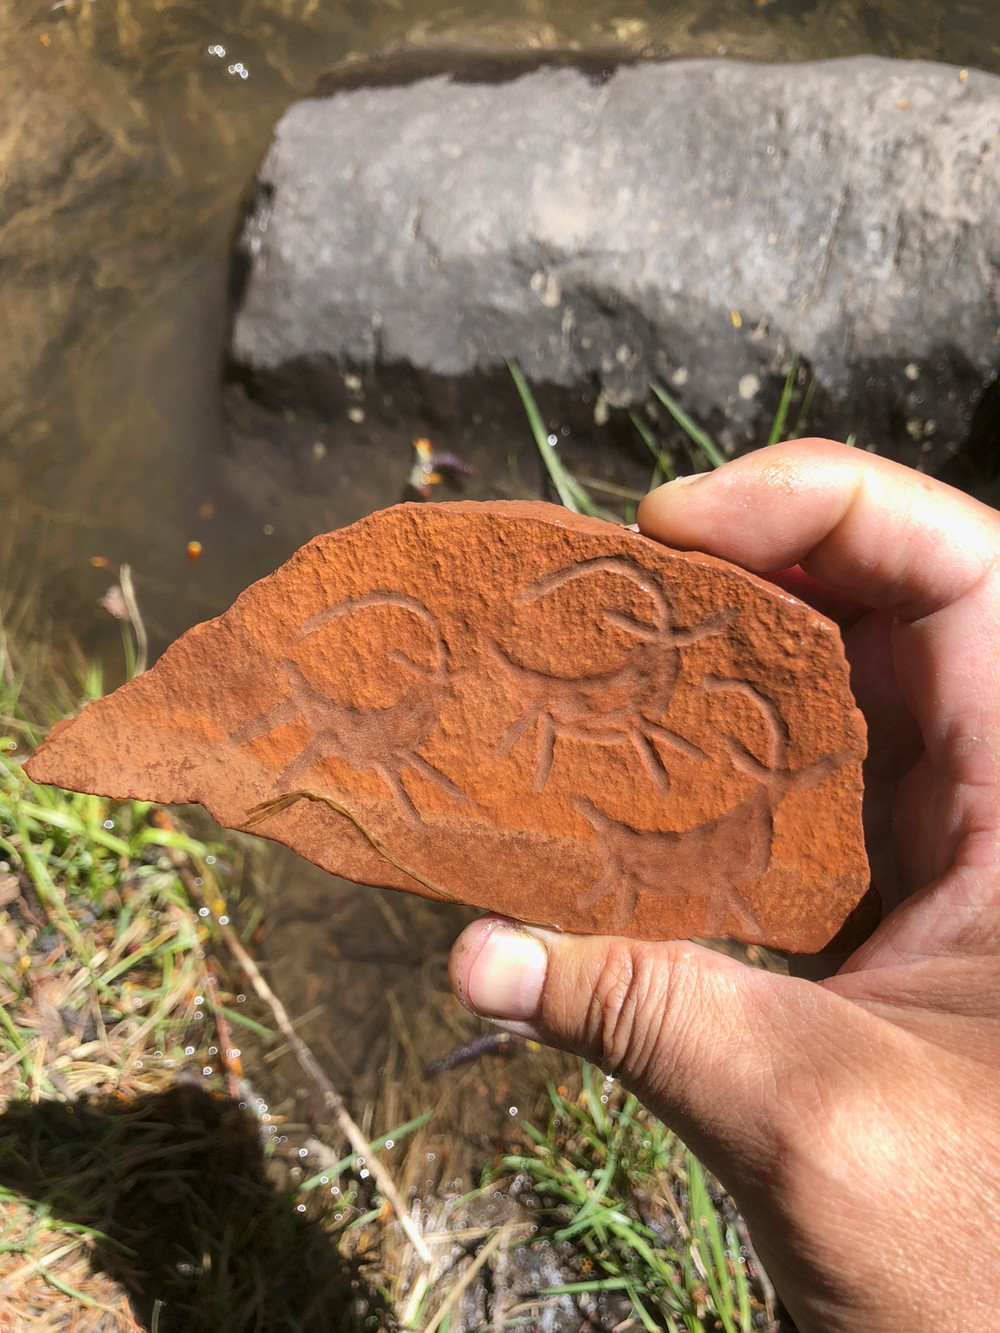 The carving gets lost in the rock when it's wet.